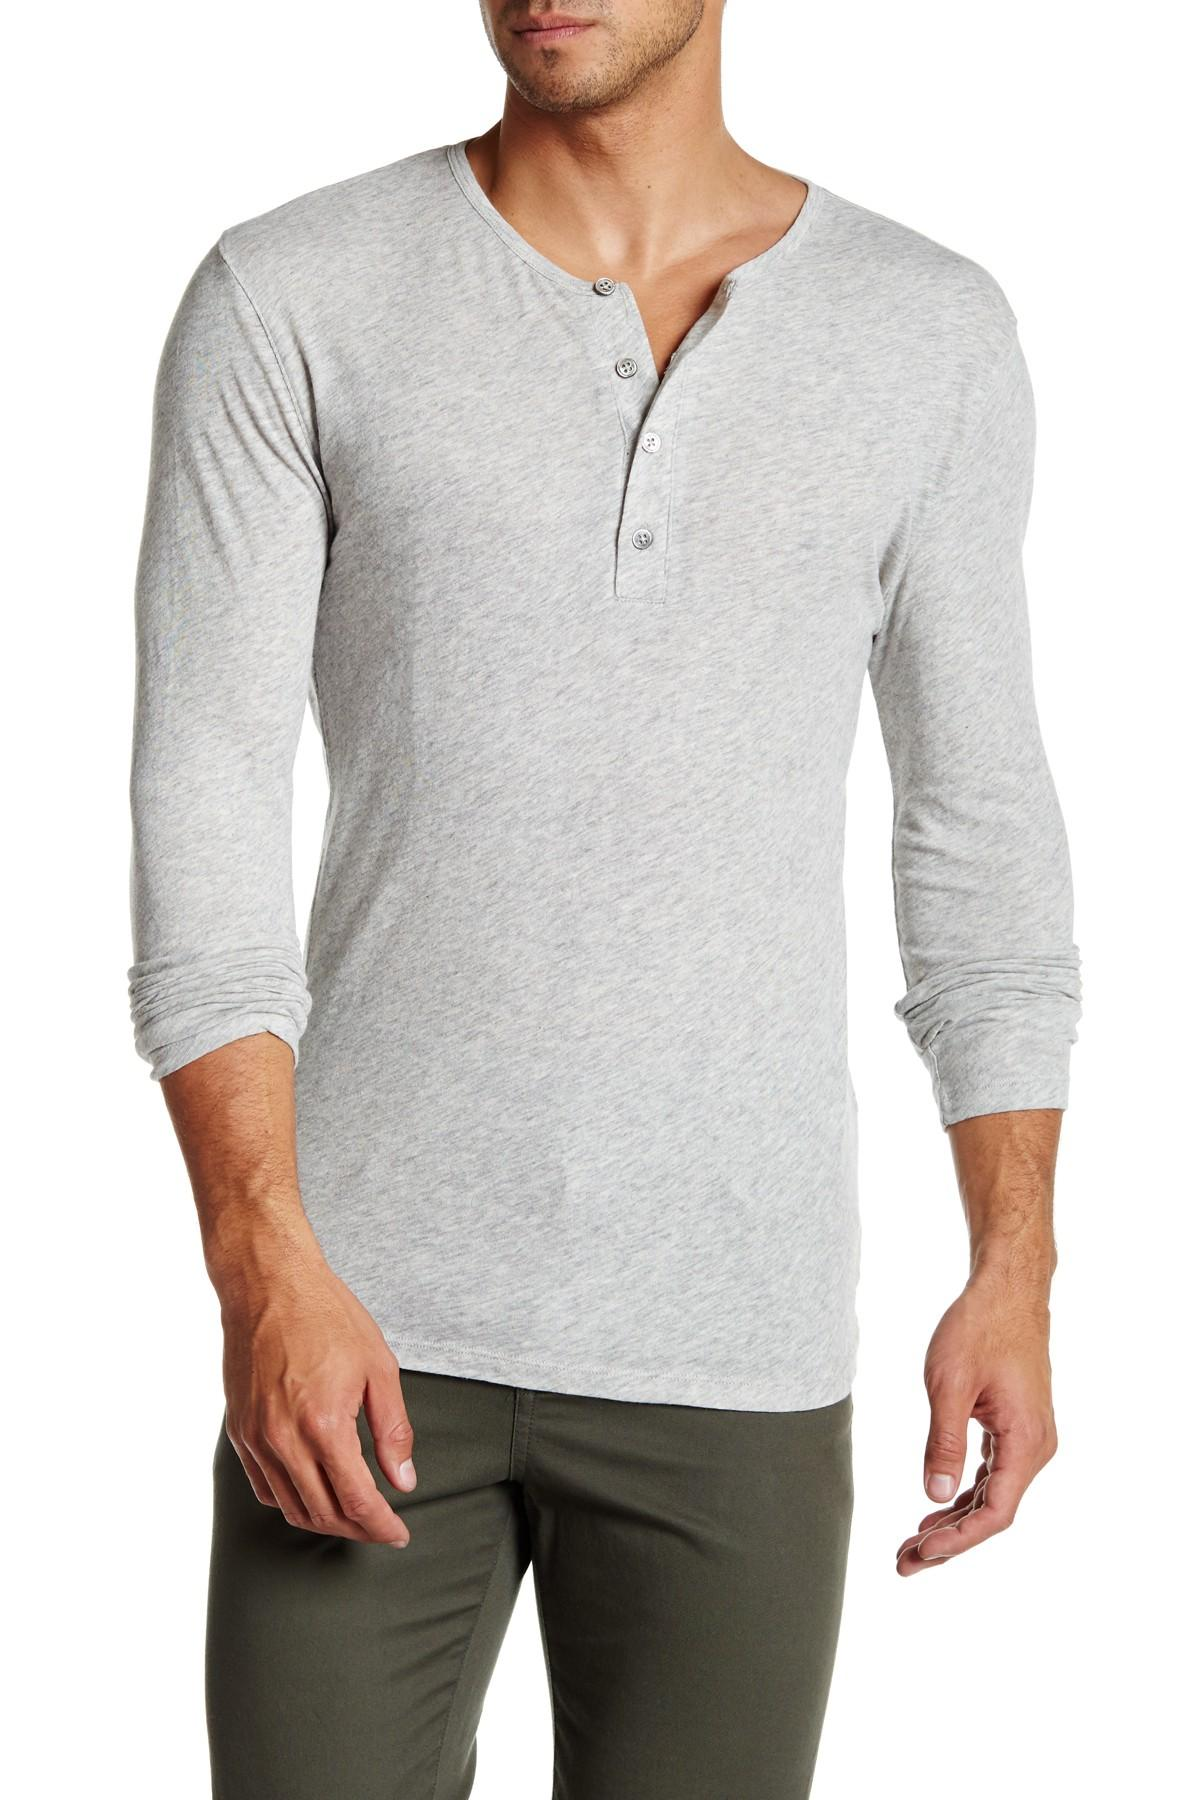 Slate And Stone Clothing : Slate stone long sleeve henley tee in gray for men lyst